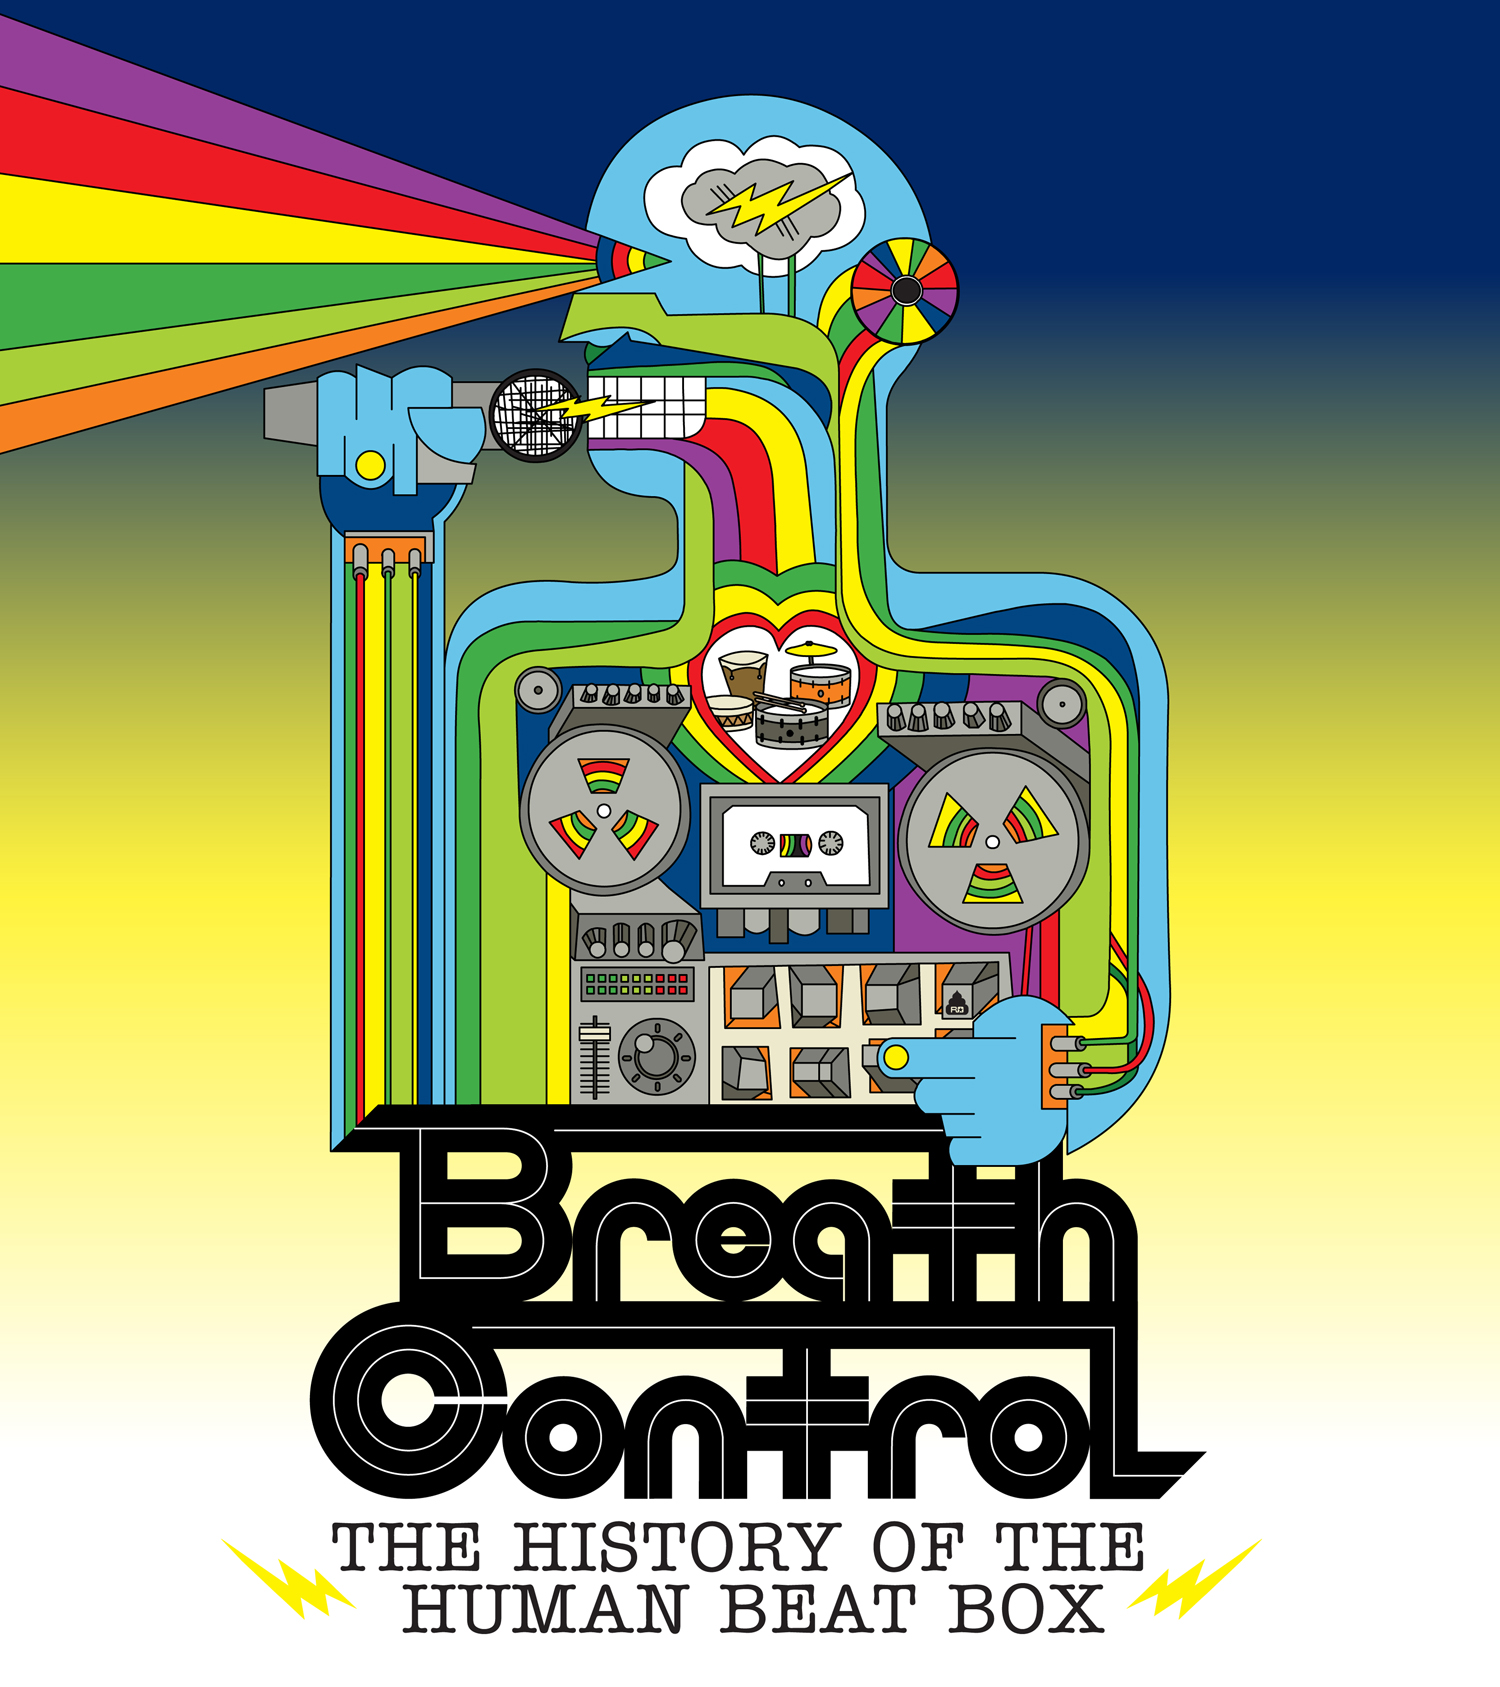 Beat Box Man, 2002 computer generated vector art poster for Breath Control documentary